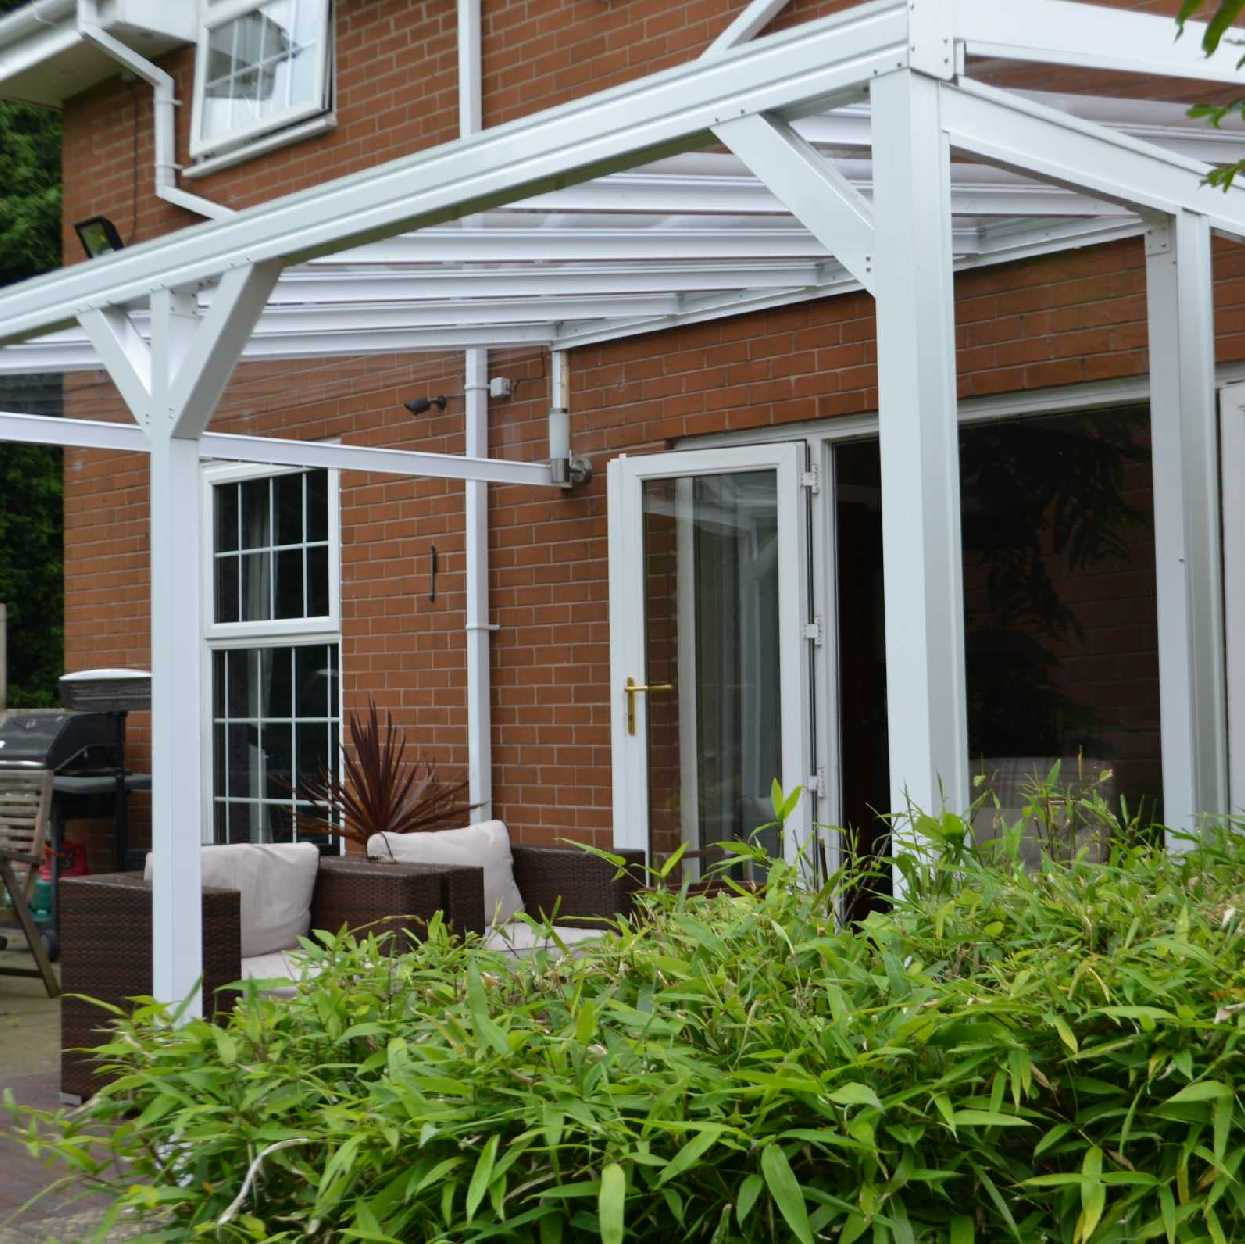 Omega Smart Lean-To Canopy with 6mm Glass Clear Plate Polycarbonate Glazing - 7.7m (W) x 1.5m (P), (4) Supporting Posts from Omega Build